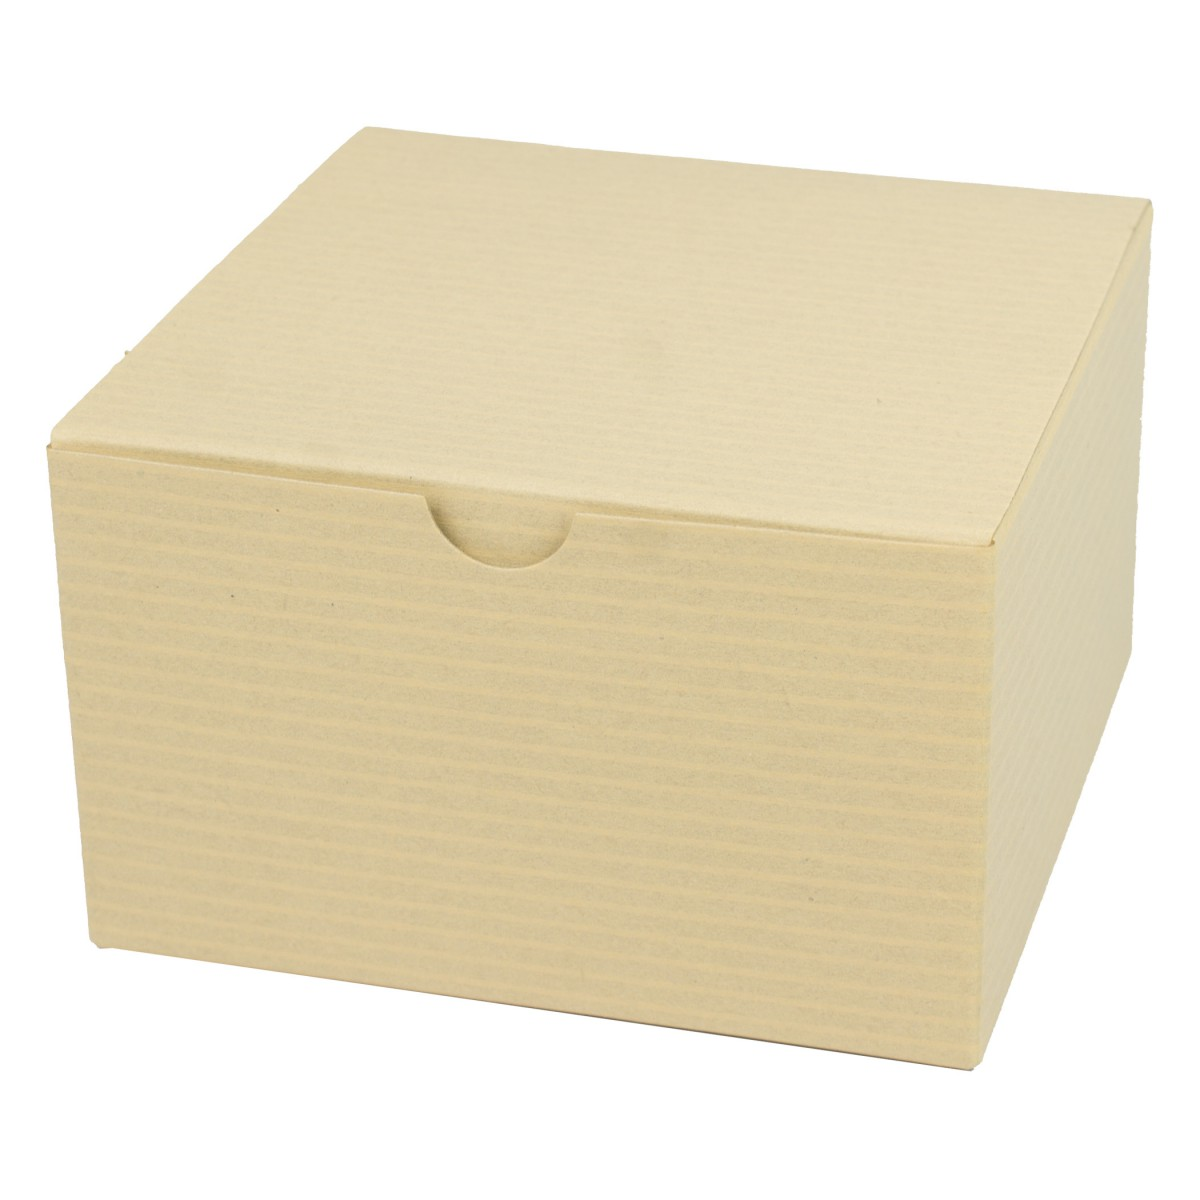 5 x 5 x 3 OATMEAL TINTED TUCK-TOP GIFT BOXES